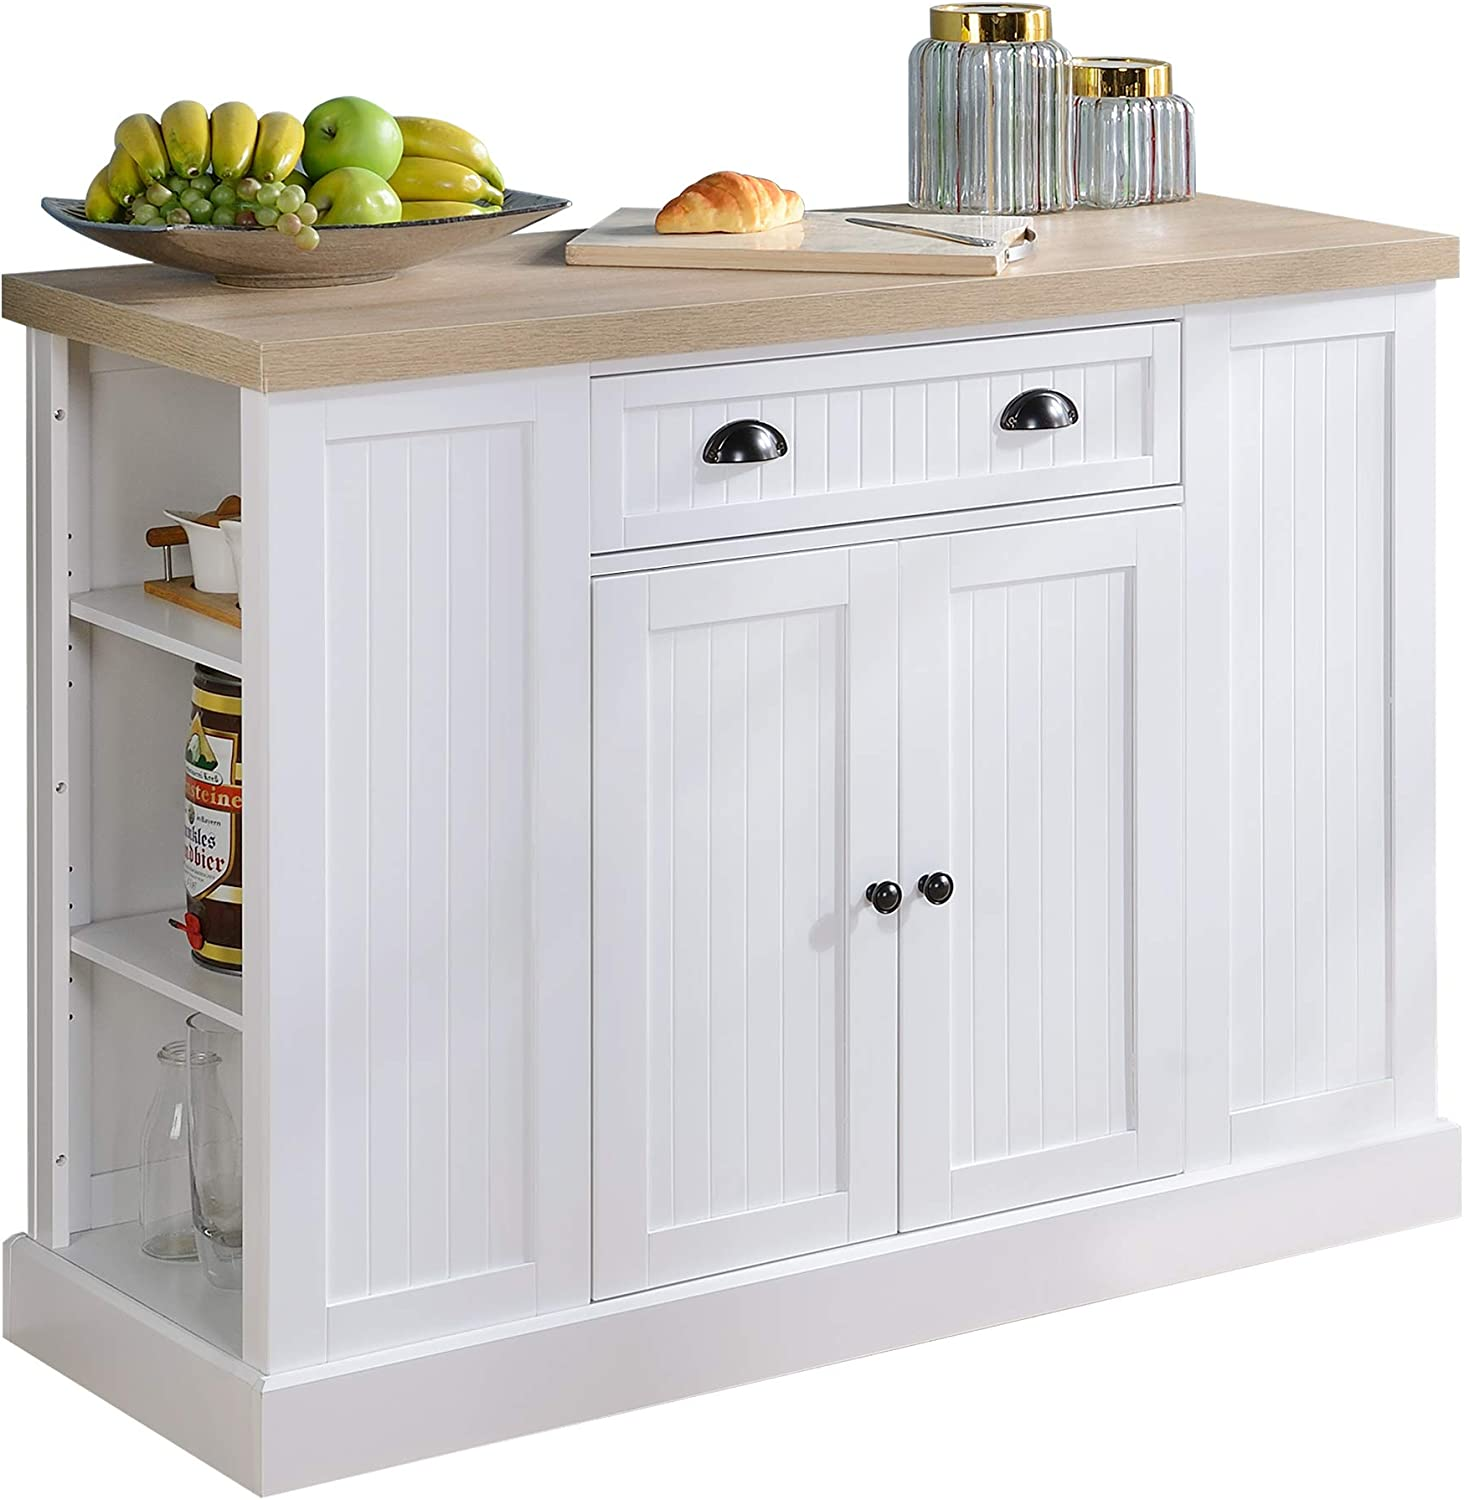 HOMCOM Fluted-Style Wooden Kitchen Island Storage Cabinet with Drawer, Open Shelving, and Interior Shelving for Dining Room, White